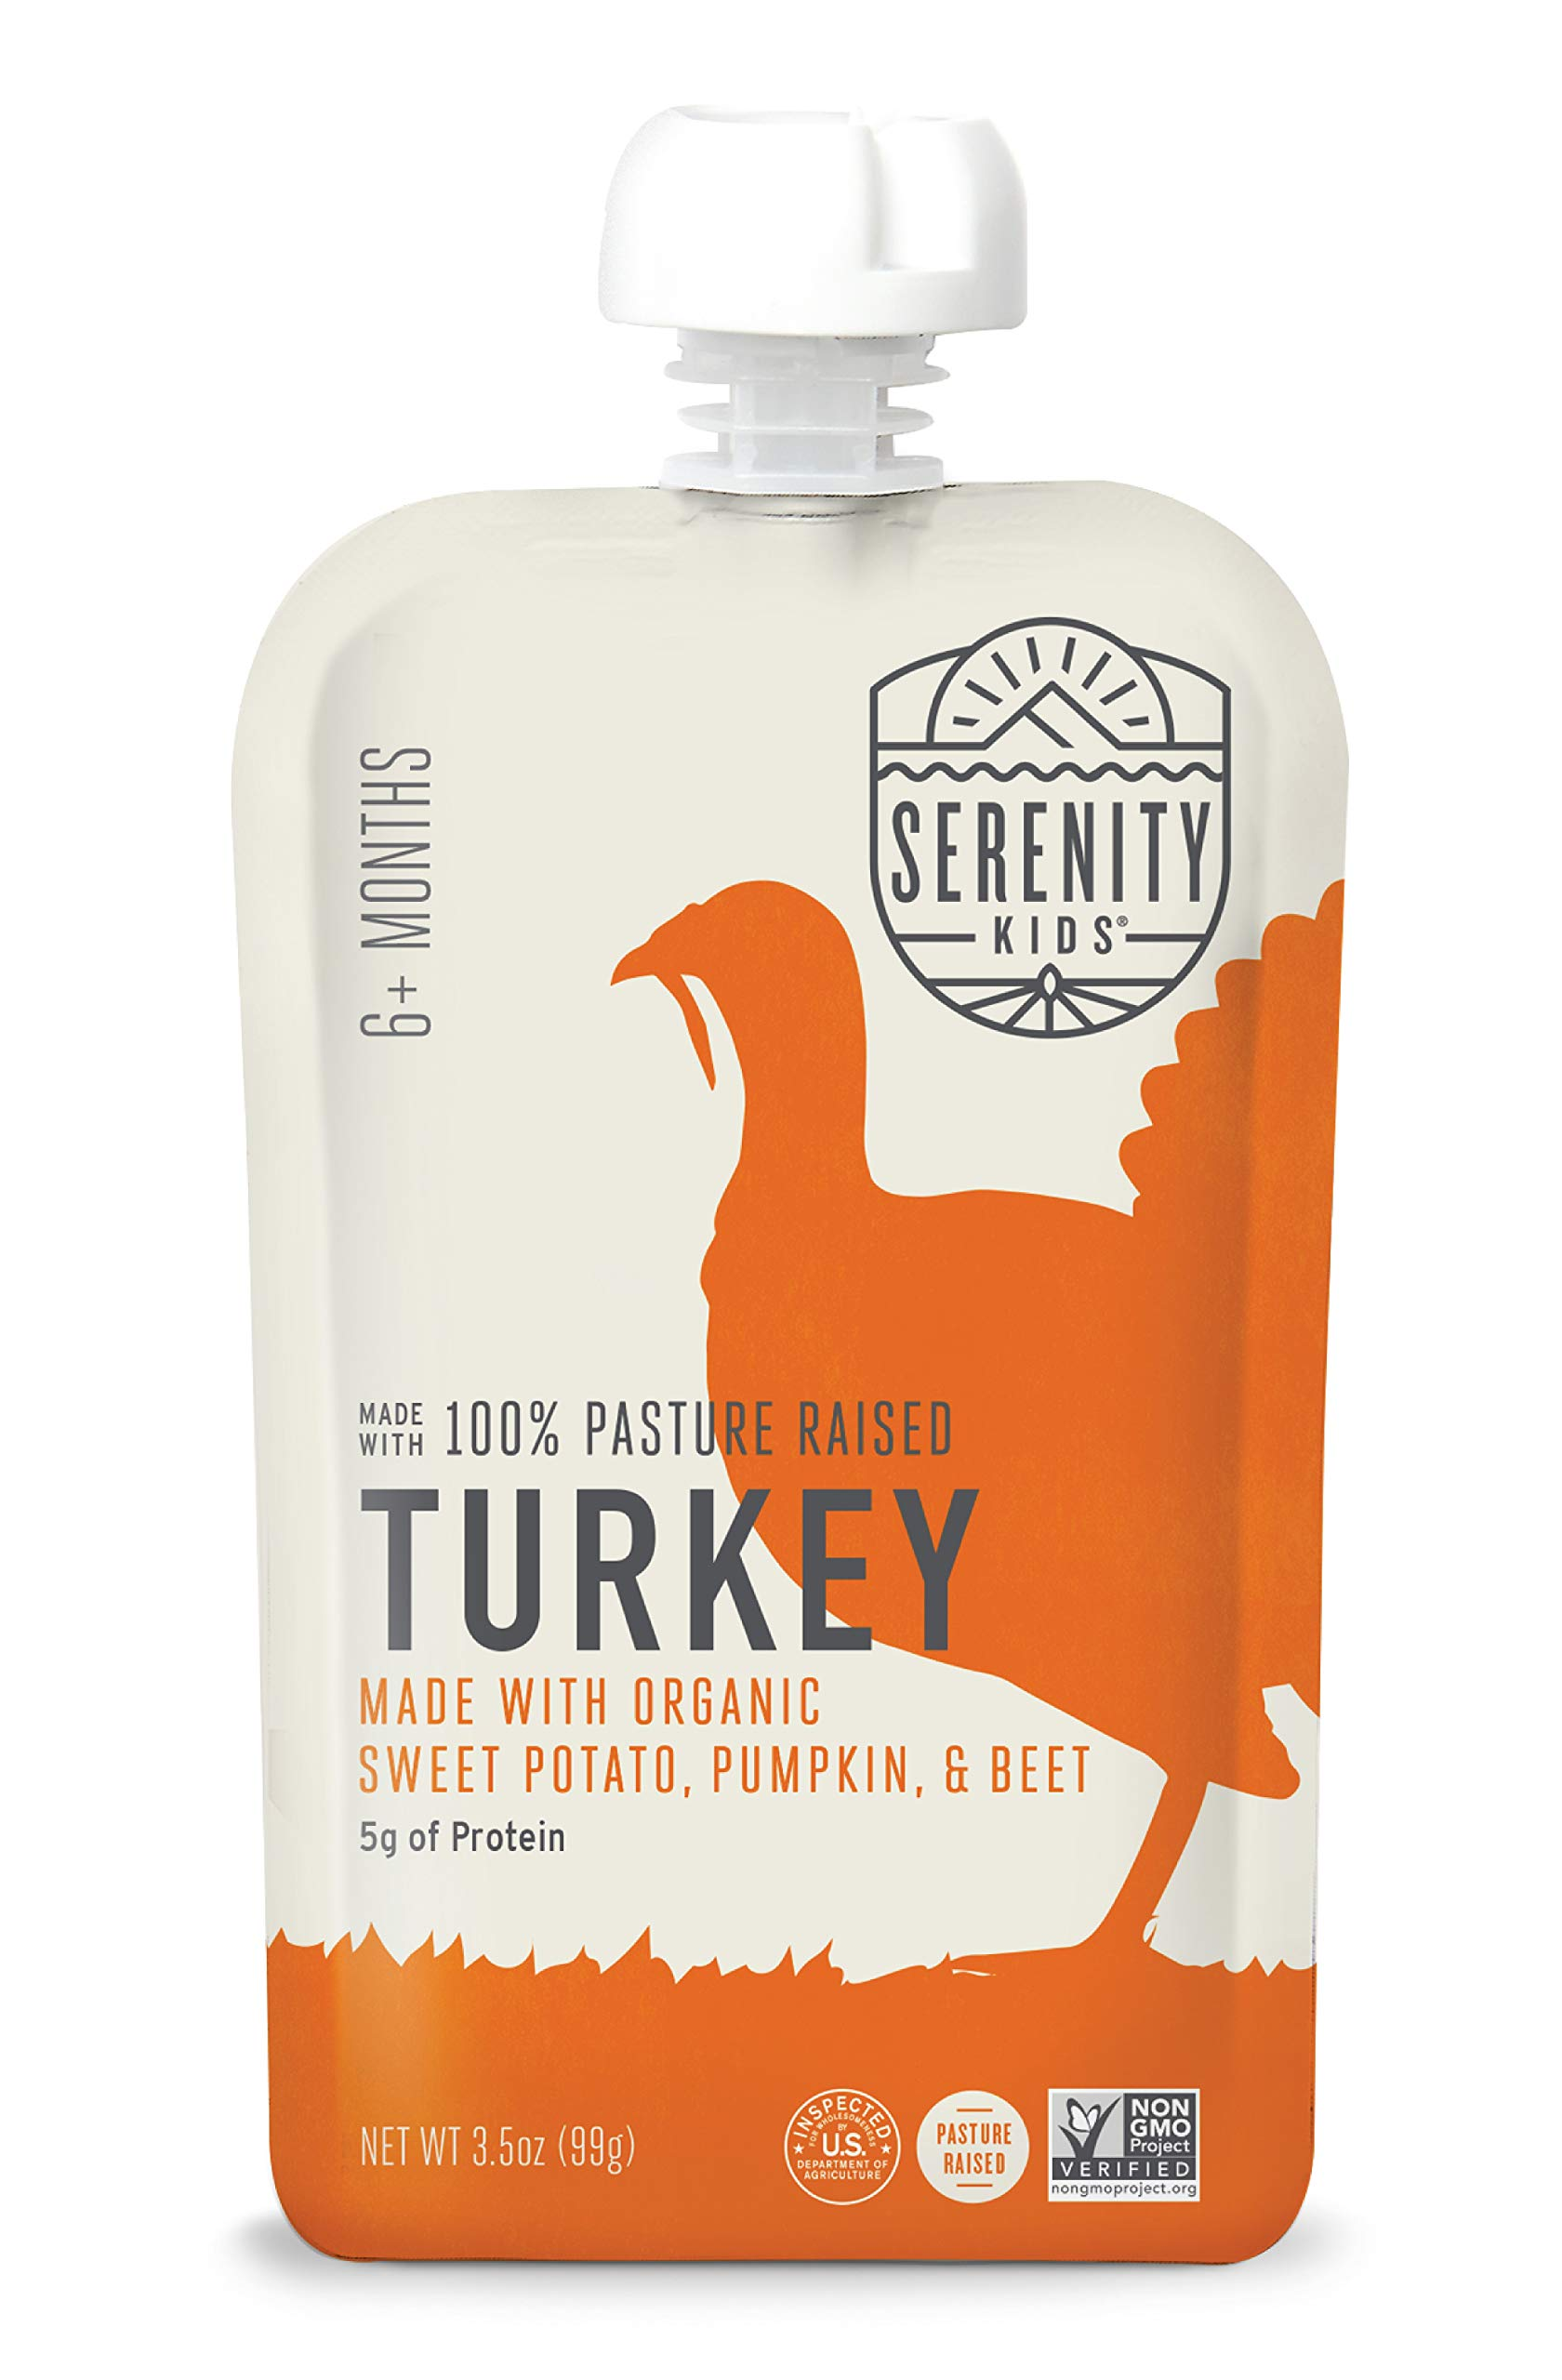 Serenity Kids Baby Food, Pasture Raised Turkey with Organic Sweet Potato, Pumpkin and Beet, For 6+ Months, 3.5 Ounce Pouch (12 Count)